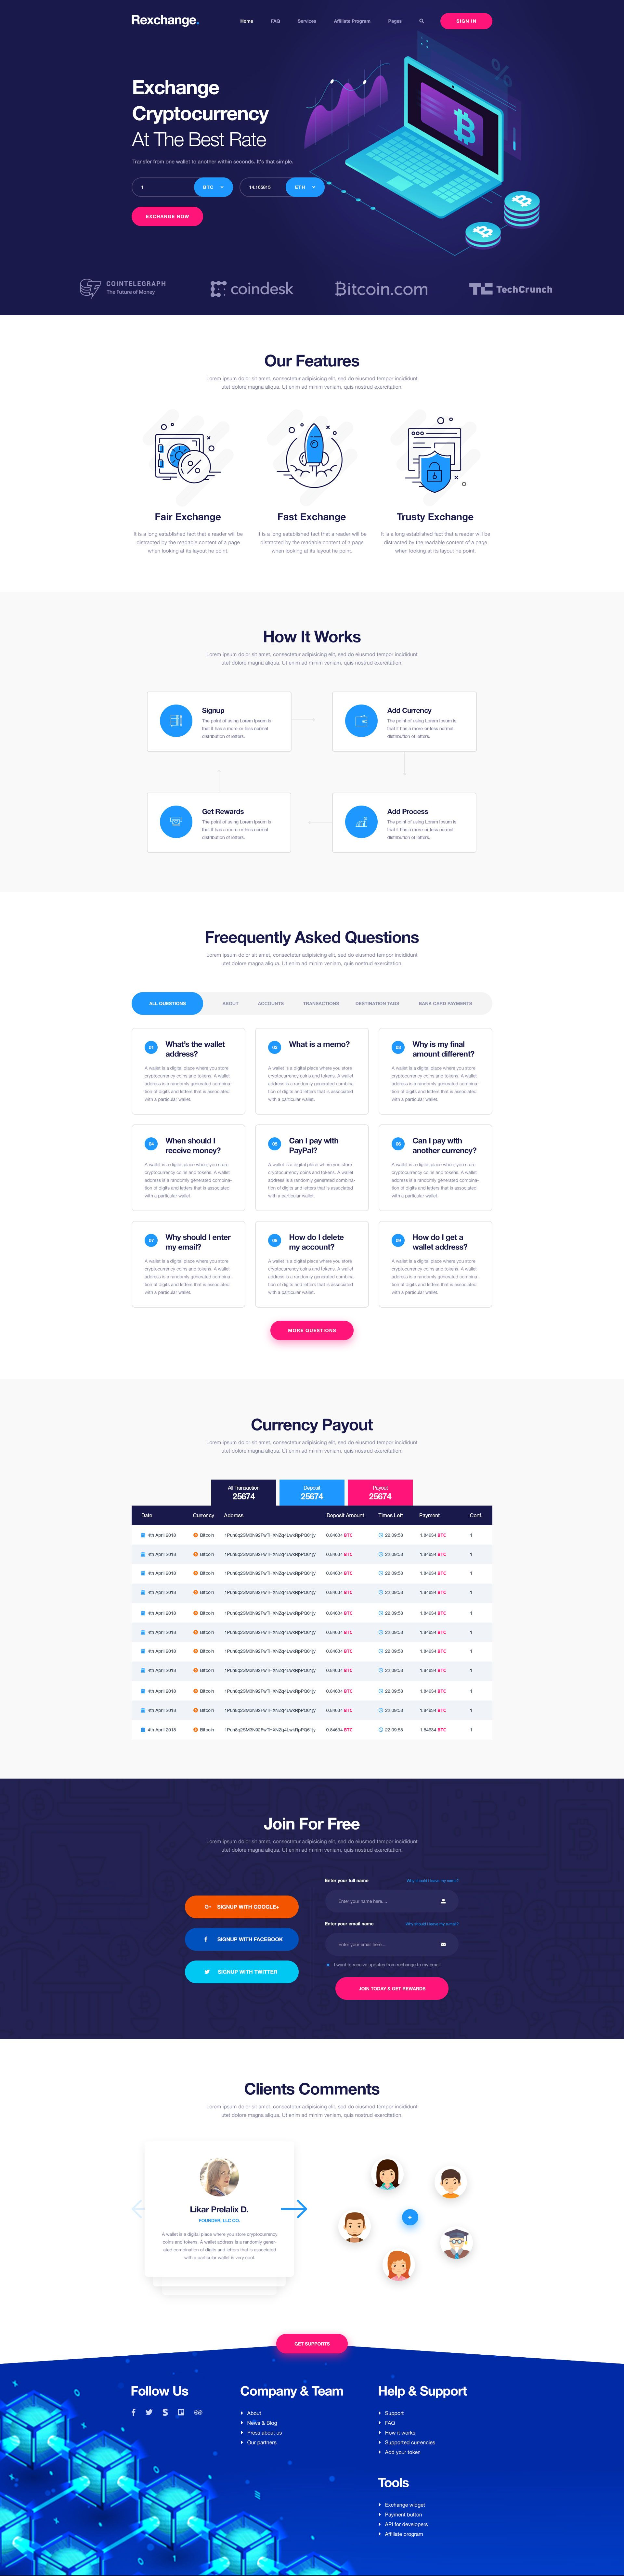 Rexchanger Cryptocurrency Exchanger Psd Template By Brotherslab Themeforest Psd Templates Website Template Design Psd Template Website